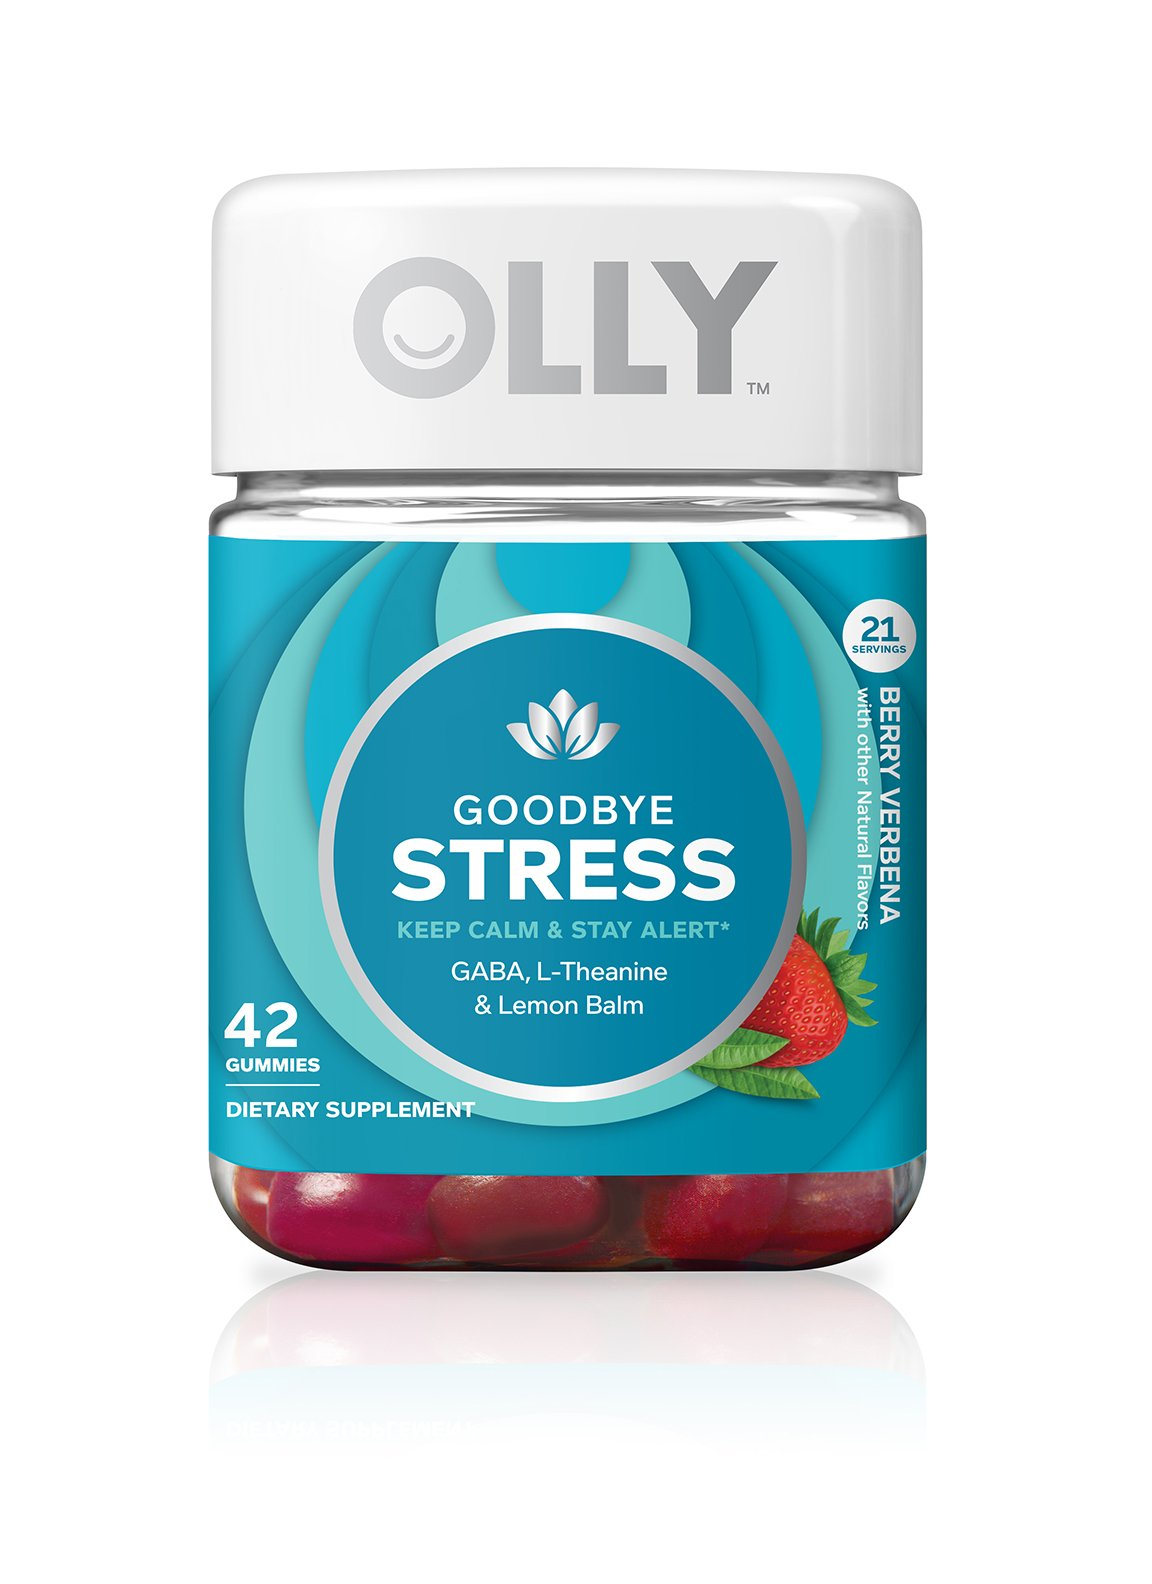 OLLY Goodbye Stress Gummy Supplement, with GABA, L-THEANINE and Lemon Balm; Berry Verbena; 42 count, 21 day supply (packaging may vary)